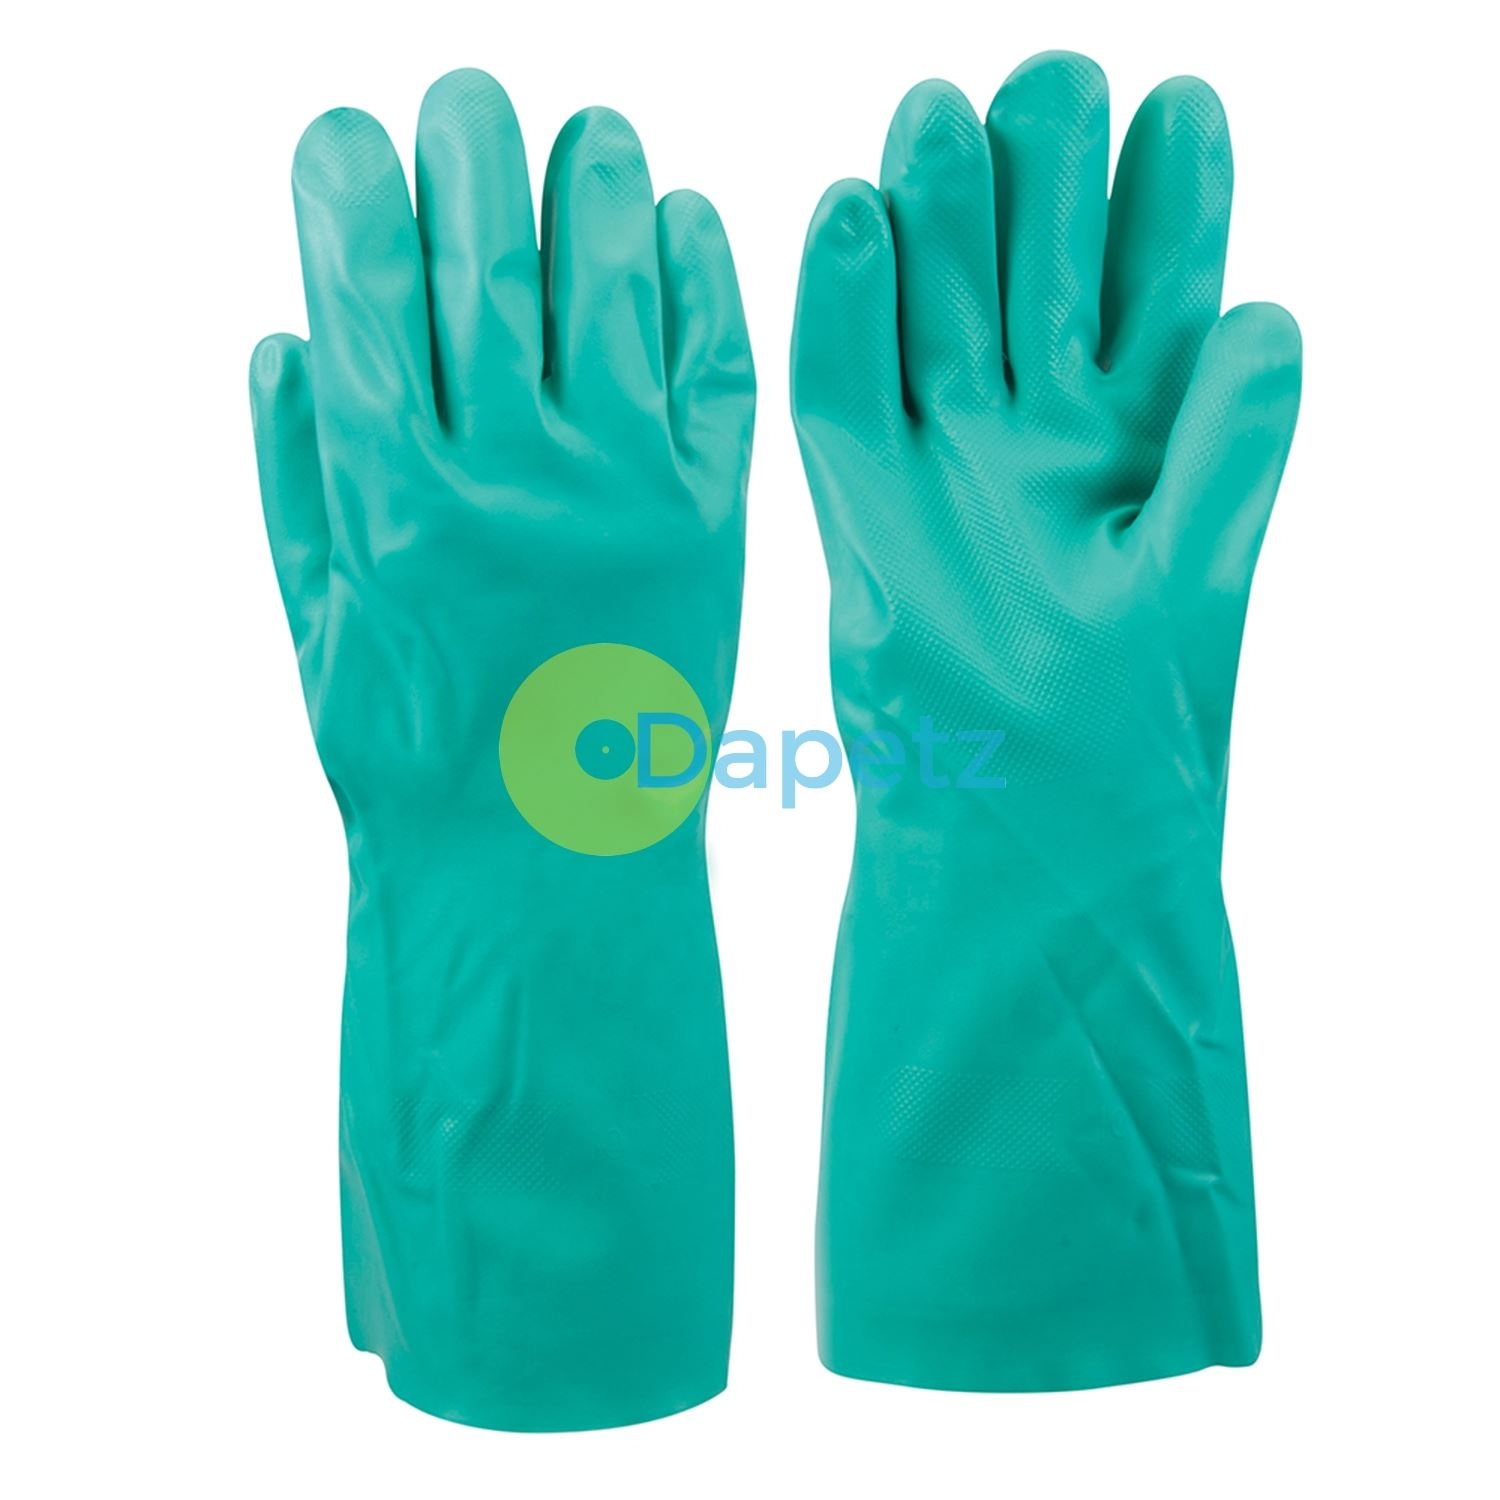 gants latex nitrile vinyle pu nettoyage pvc thermal gel mitaines jetable ebay. Black Bedroom Furniture Sets. Home Design Ideas